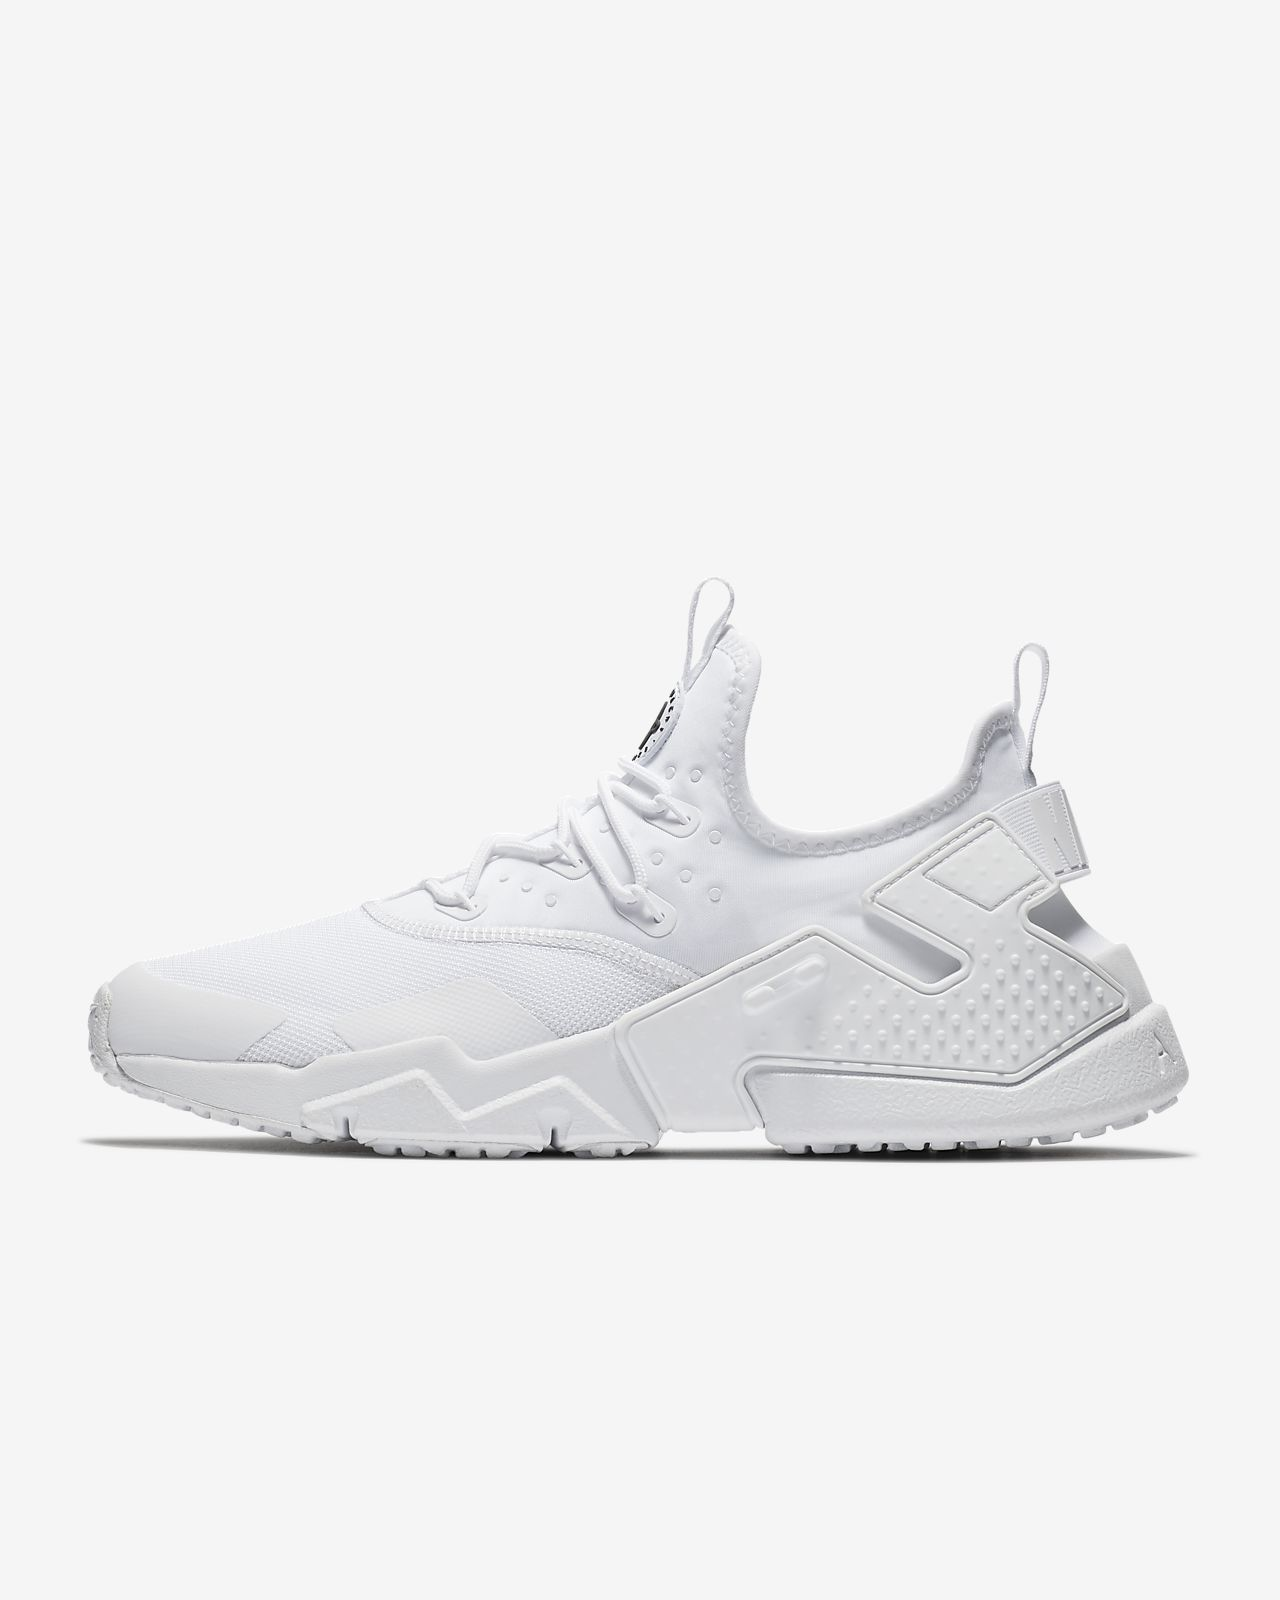 best service ad9dd 4d1d6 ... Nike Air Huarache Drift Mens Shoe